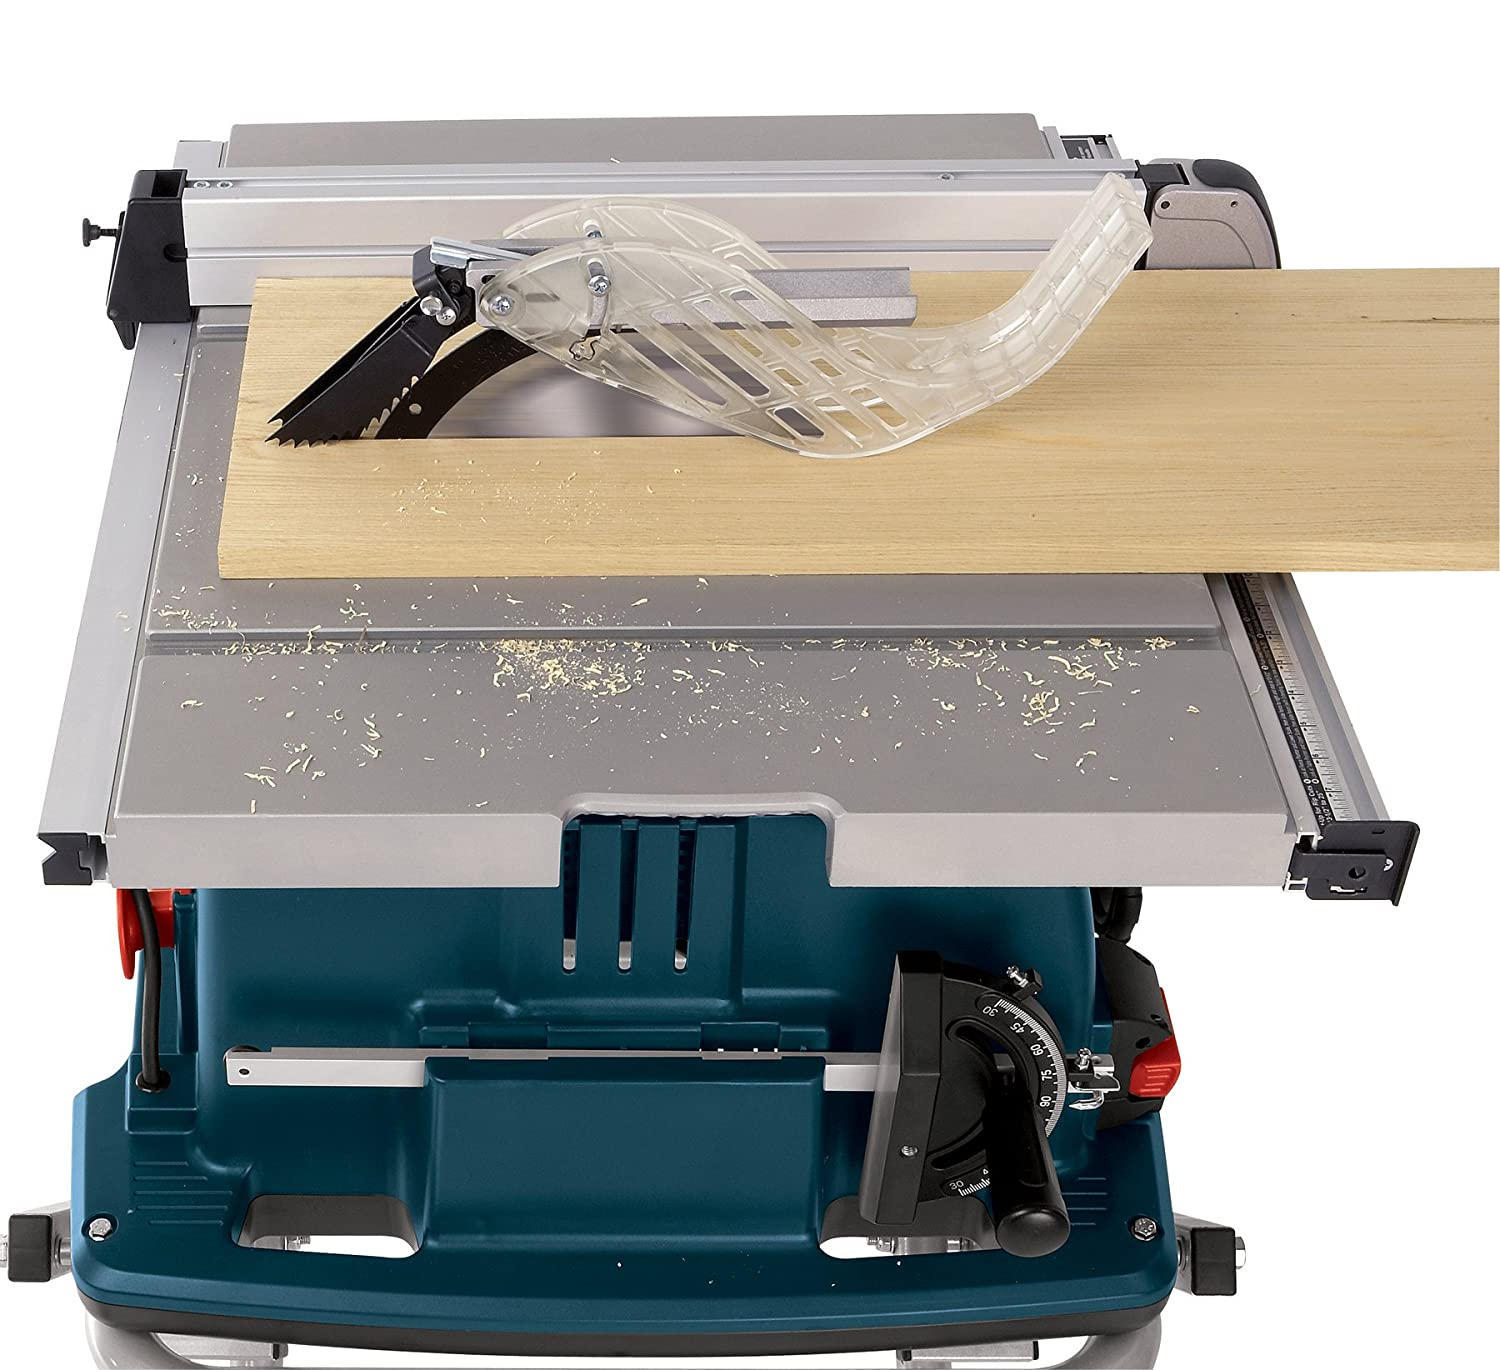 Bosch 4100 09 10 Inch Portable Table Saw Review Fundamentals Of Woodworking